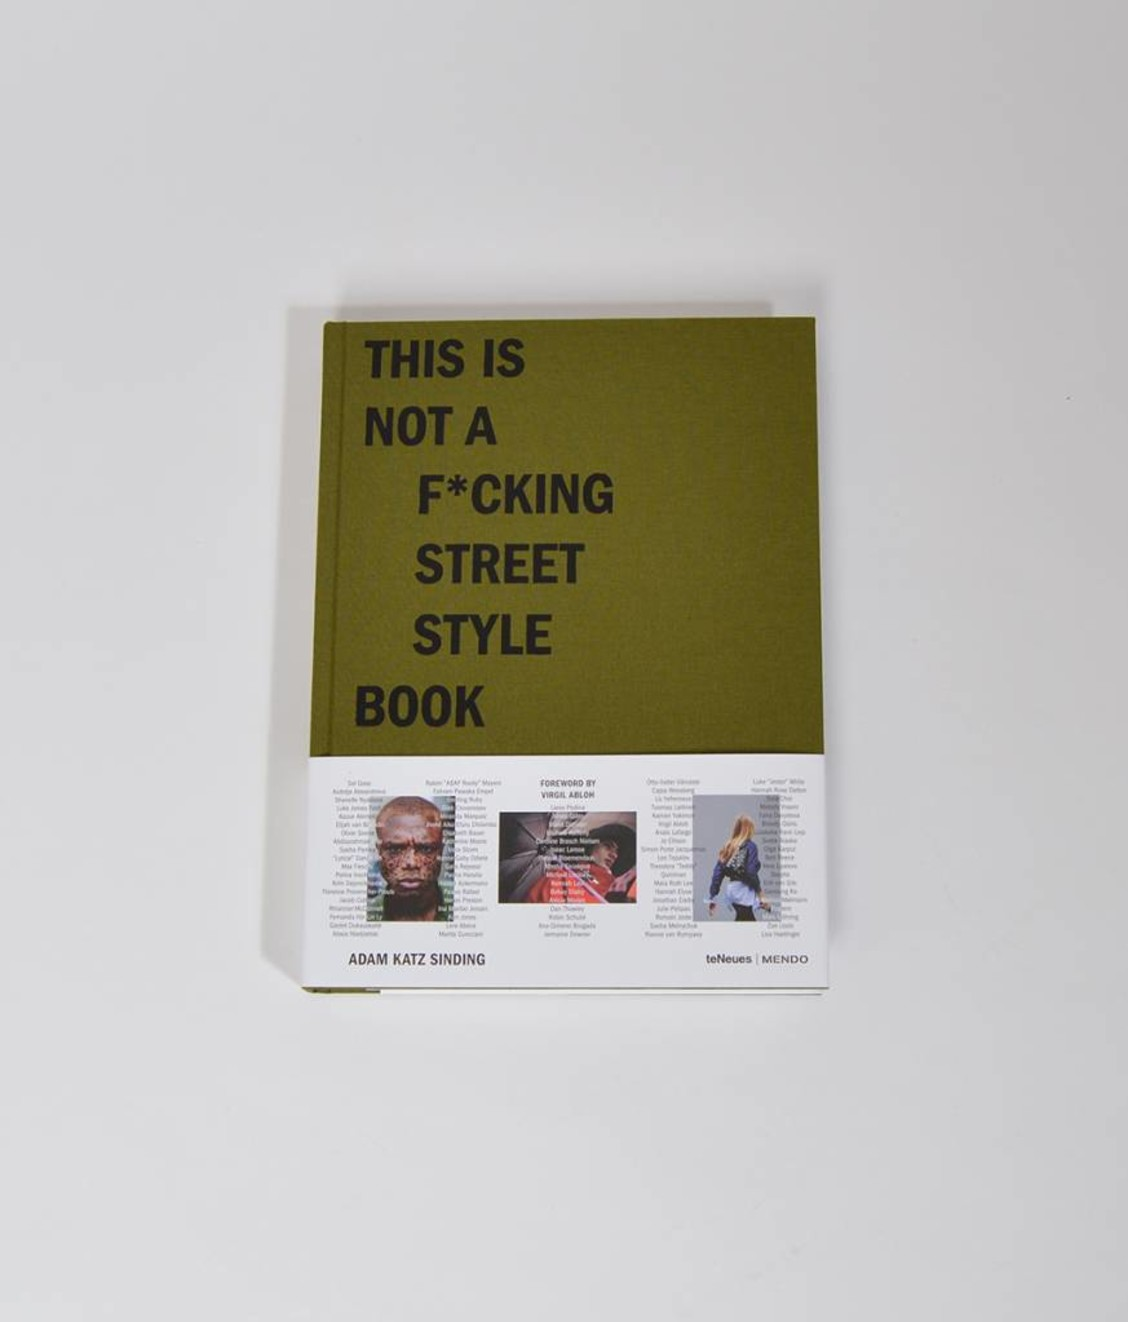 Mendo This Is Not A F*cking Street Style Book